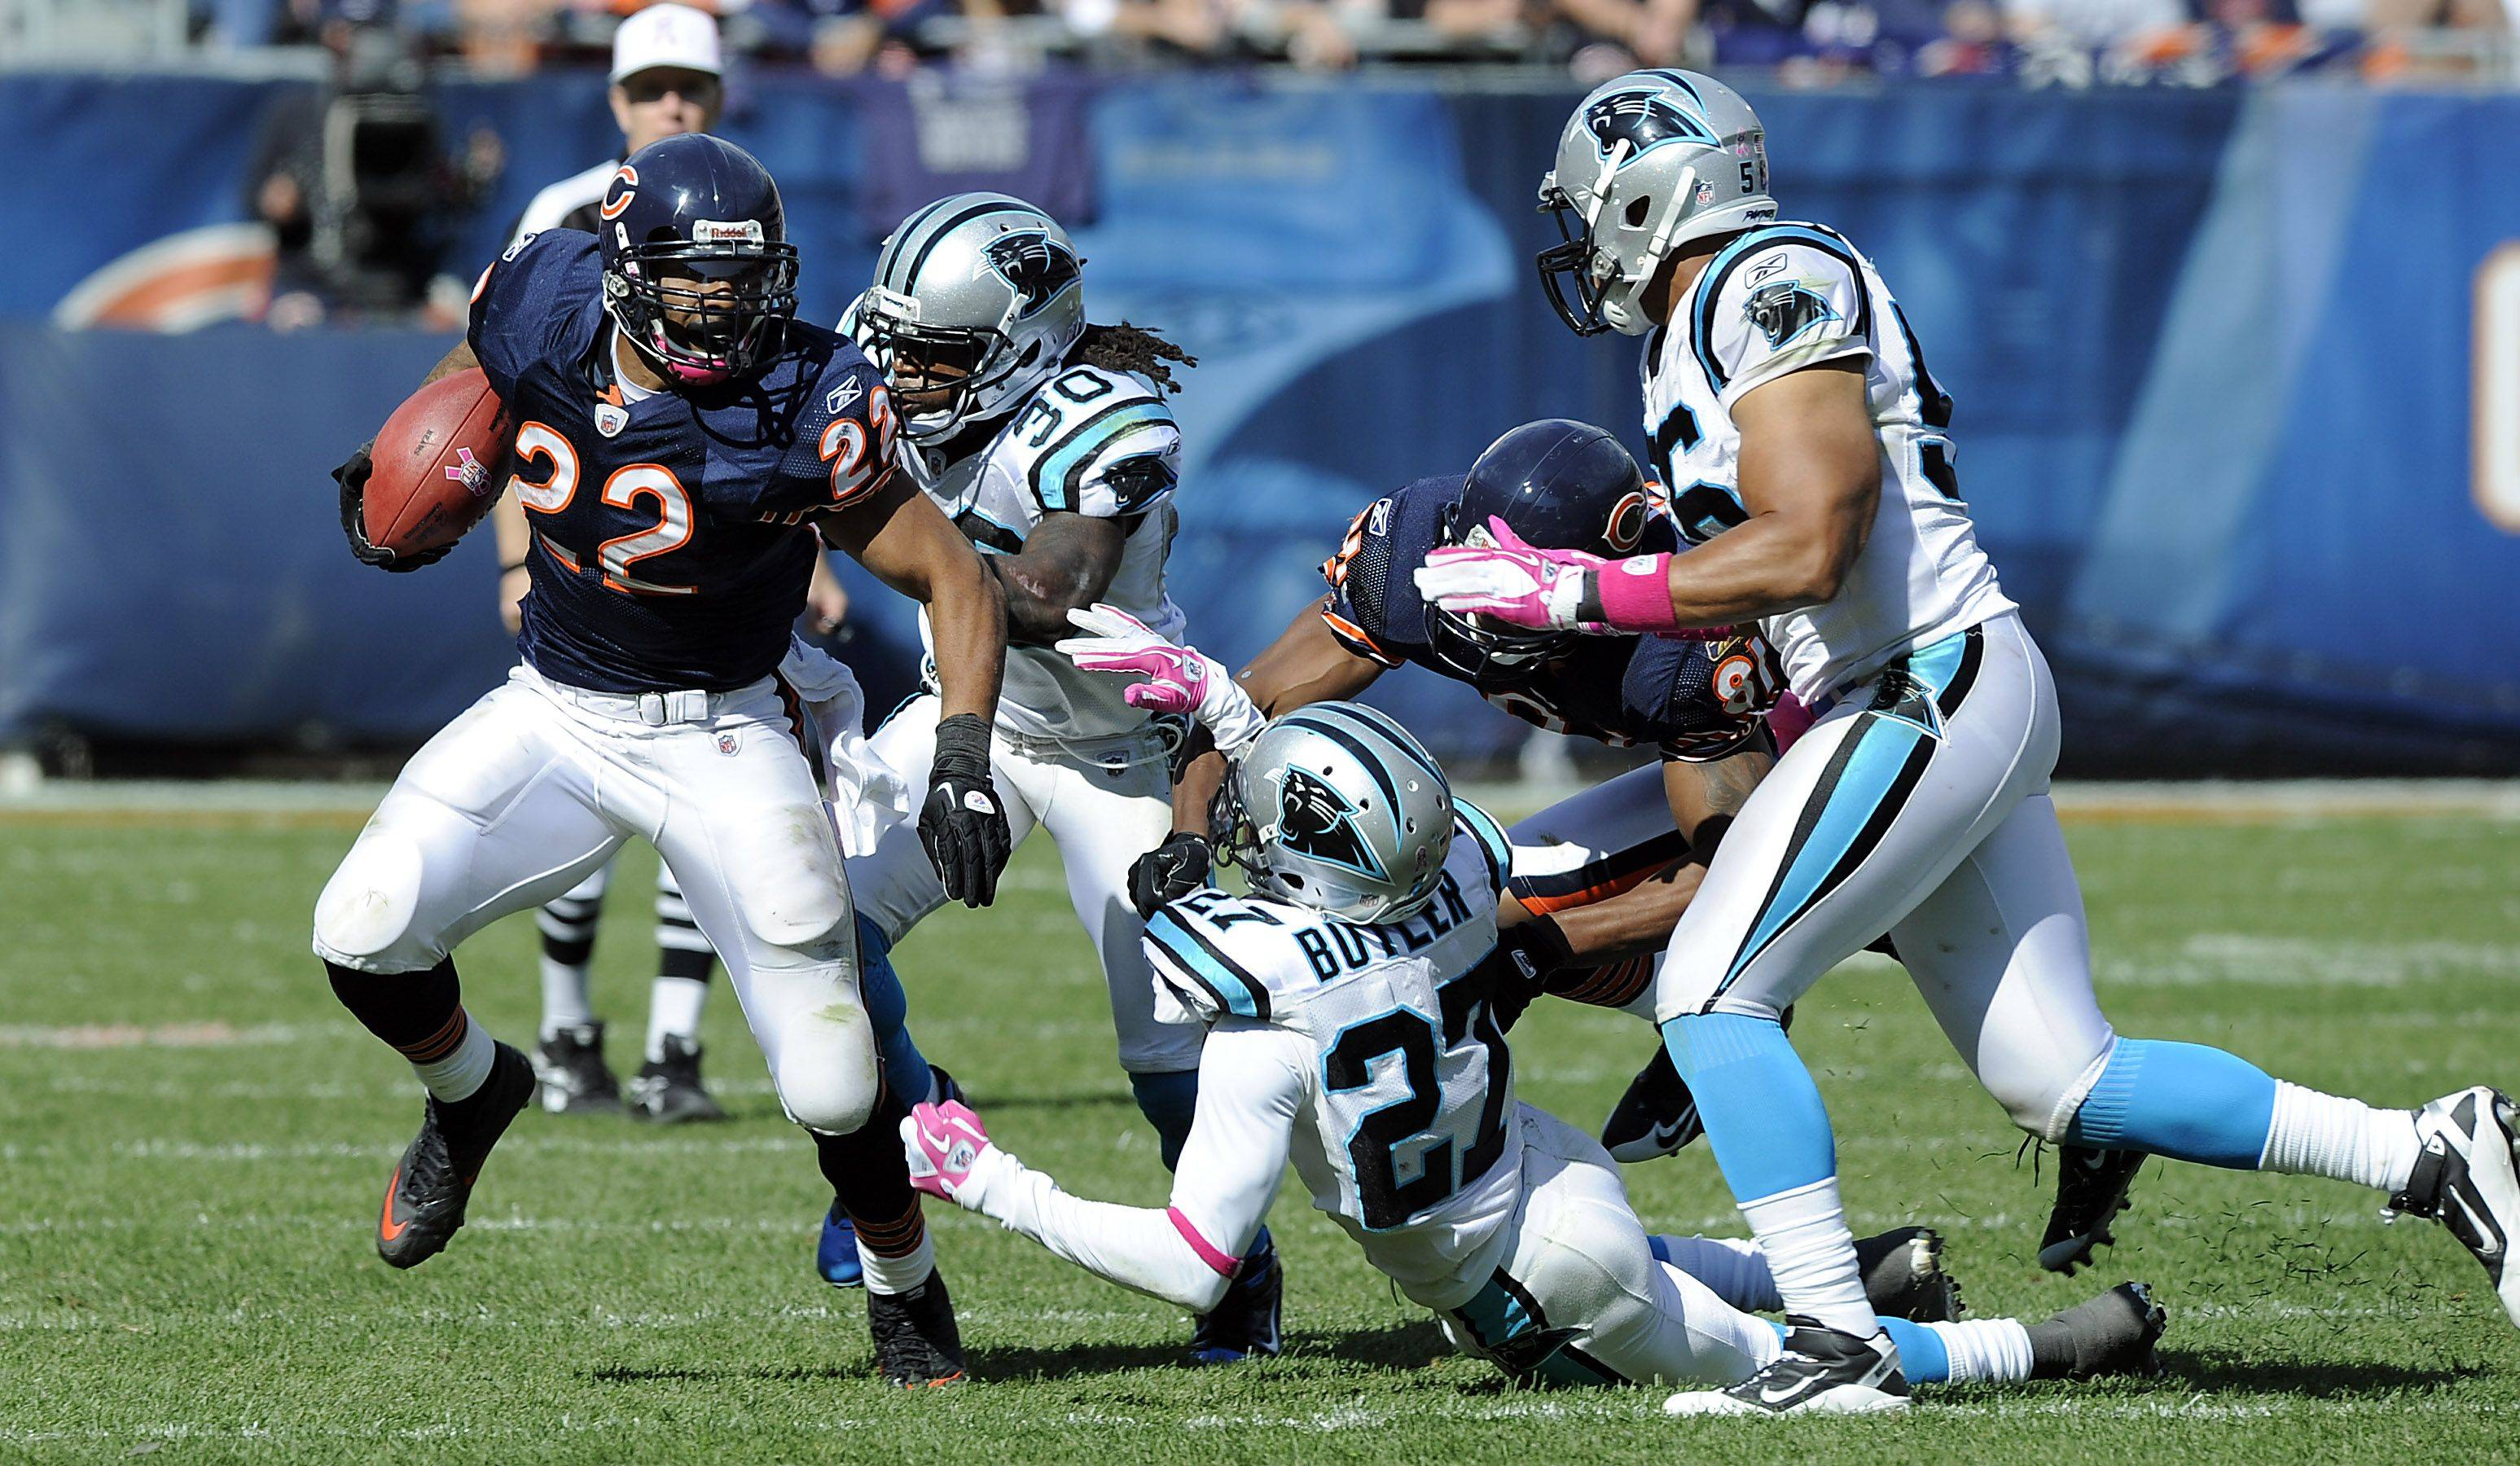 Bears Matt Forte on the run in the 4th quarter run against the Panthers defense at Soldier Field in Chicago.